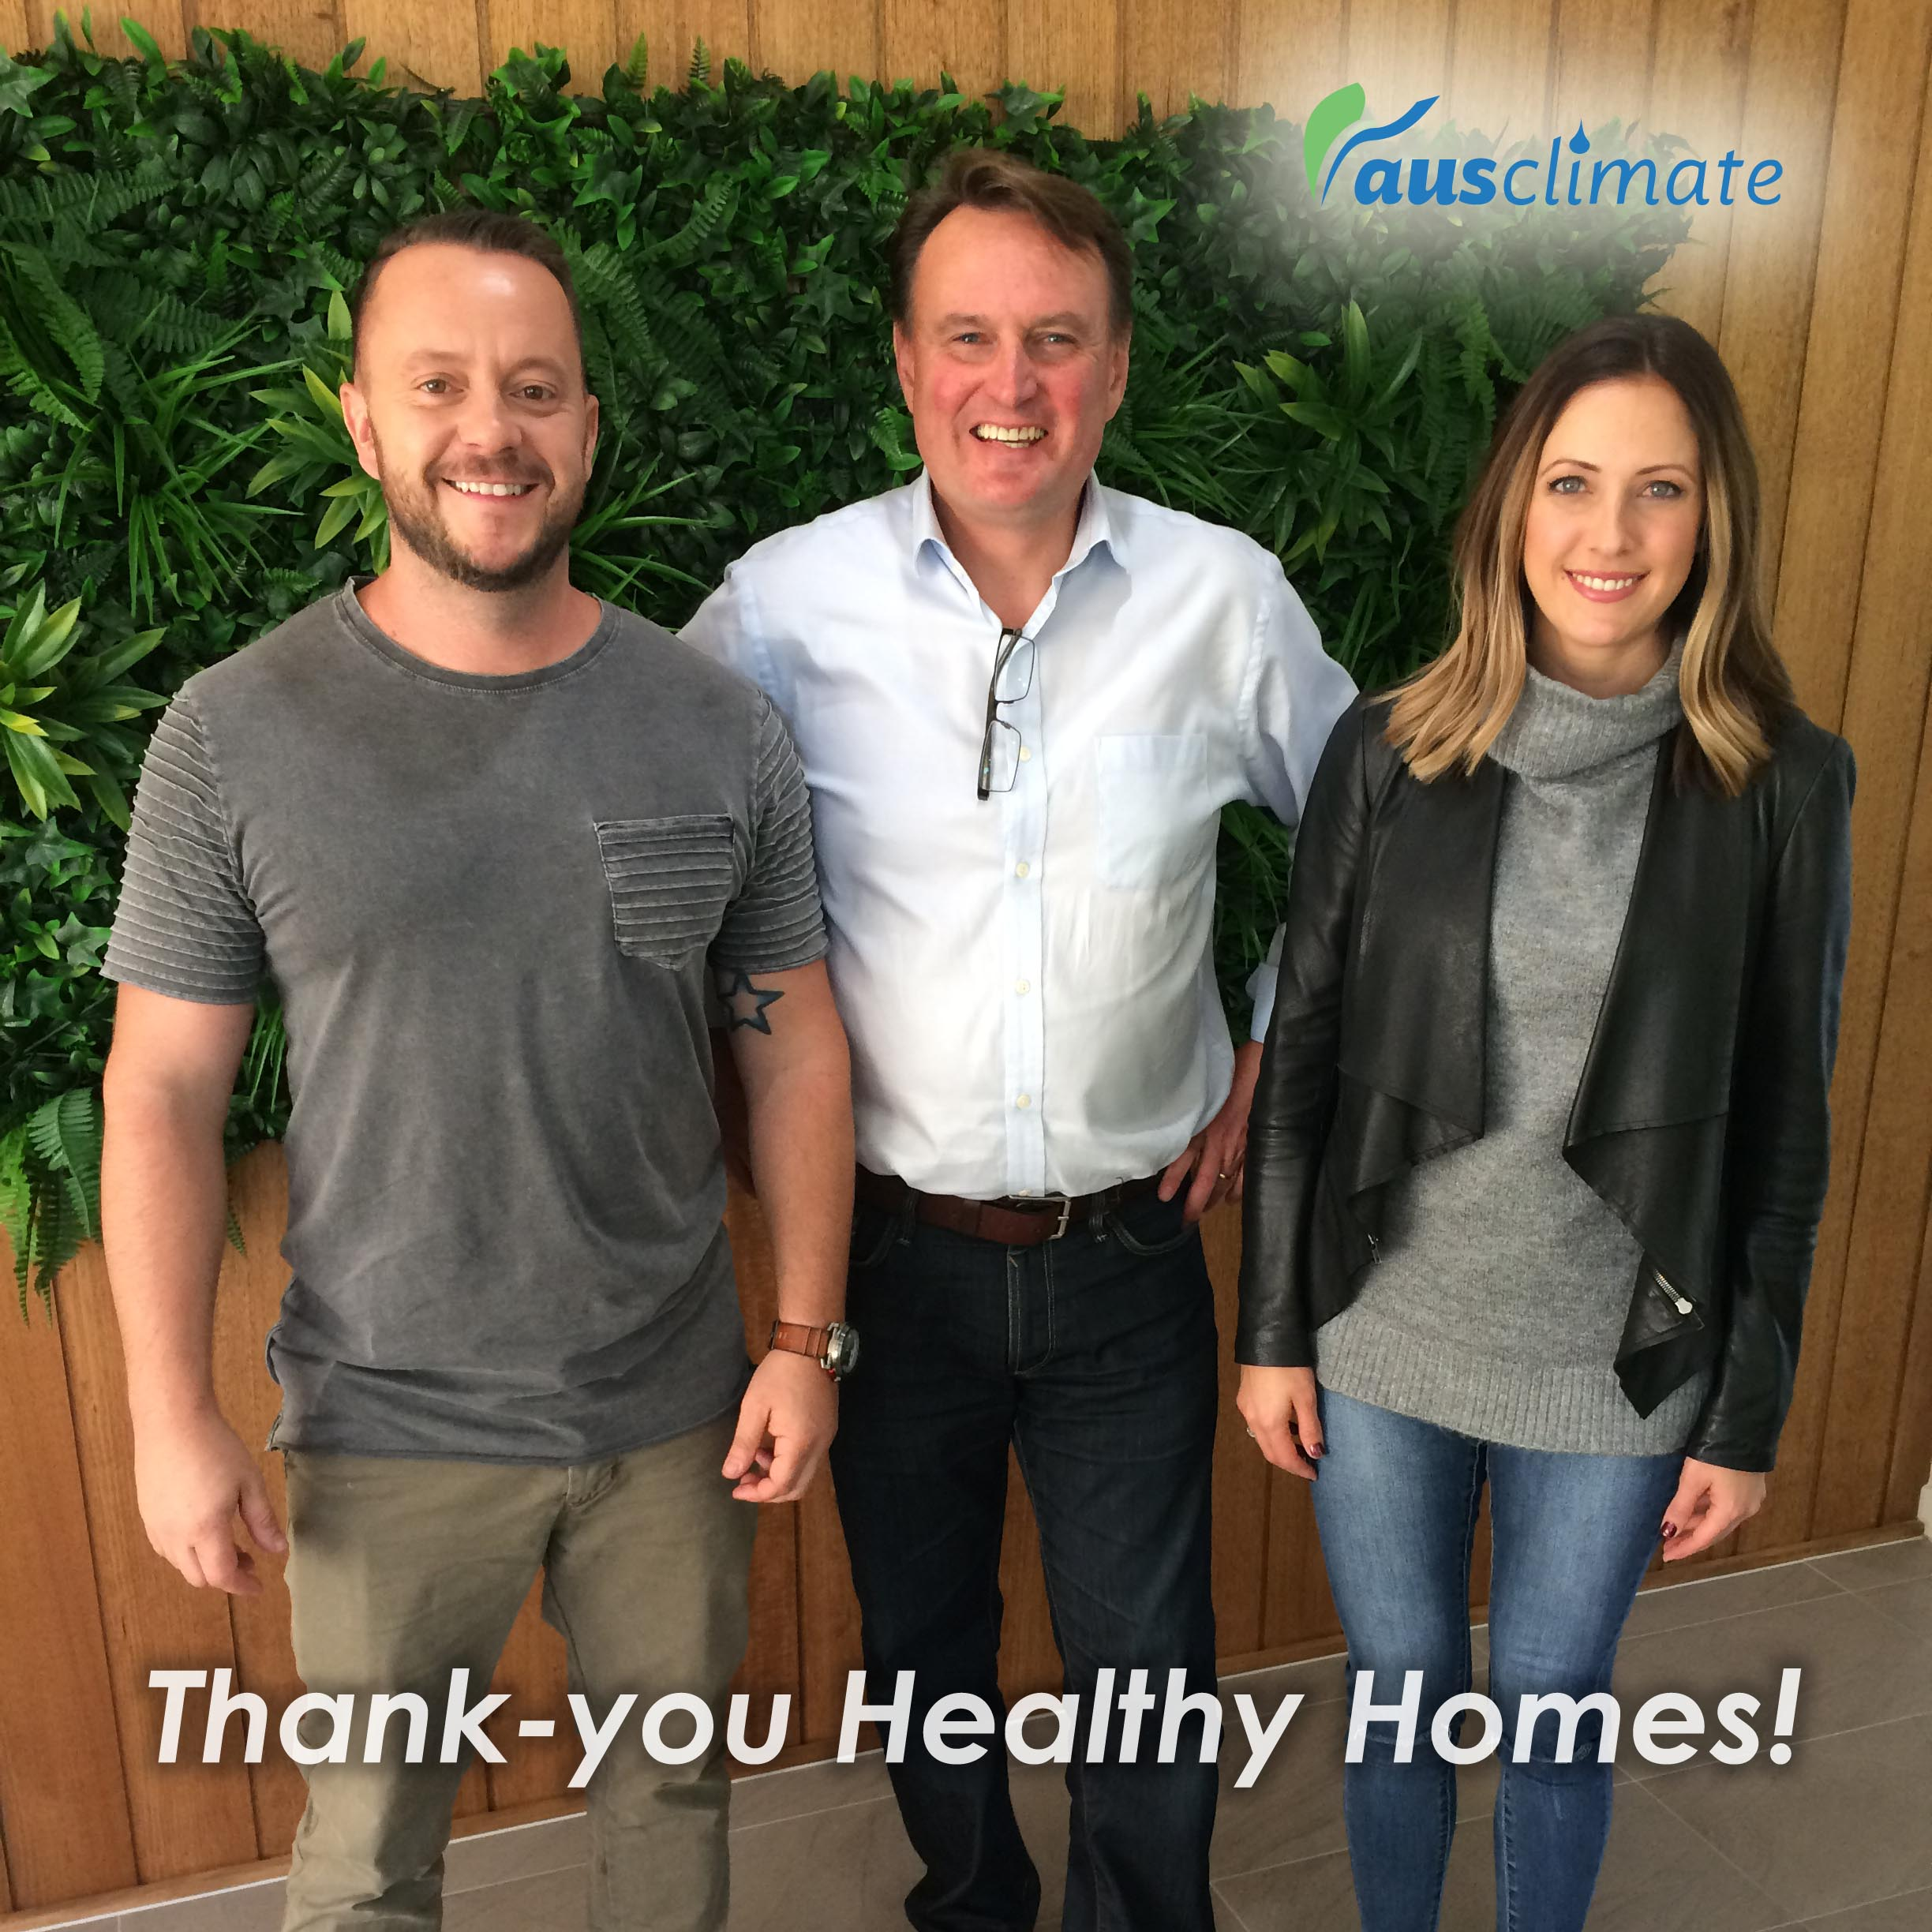 Ausclimate on Healthy Homes 2